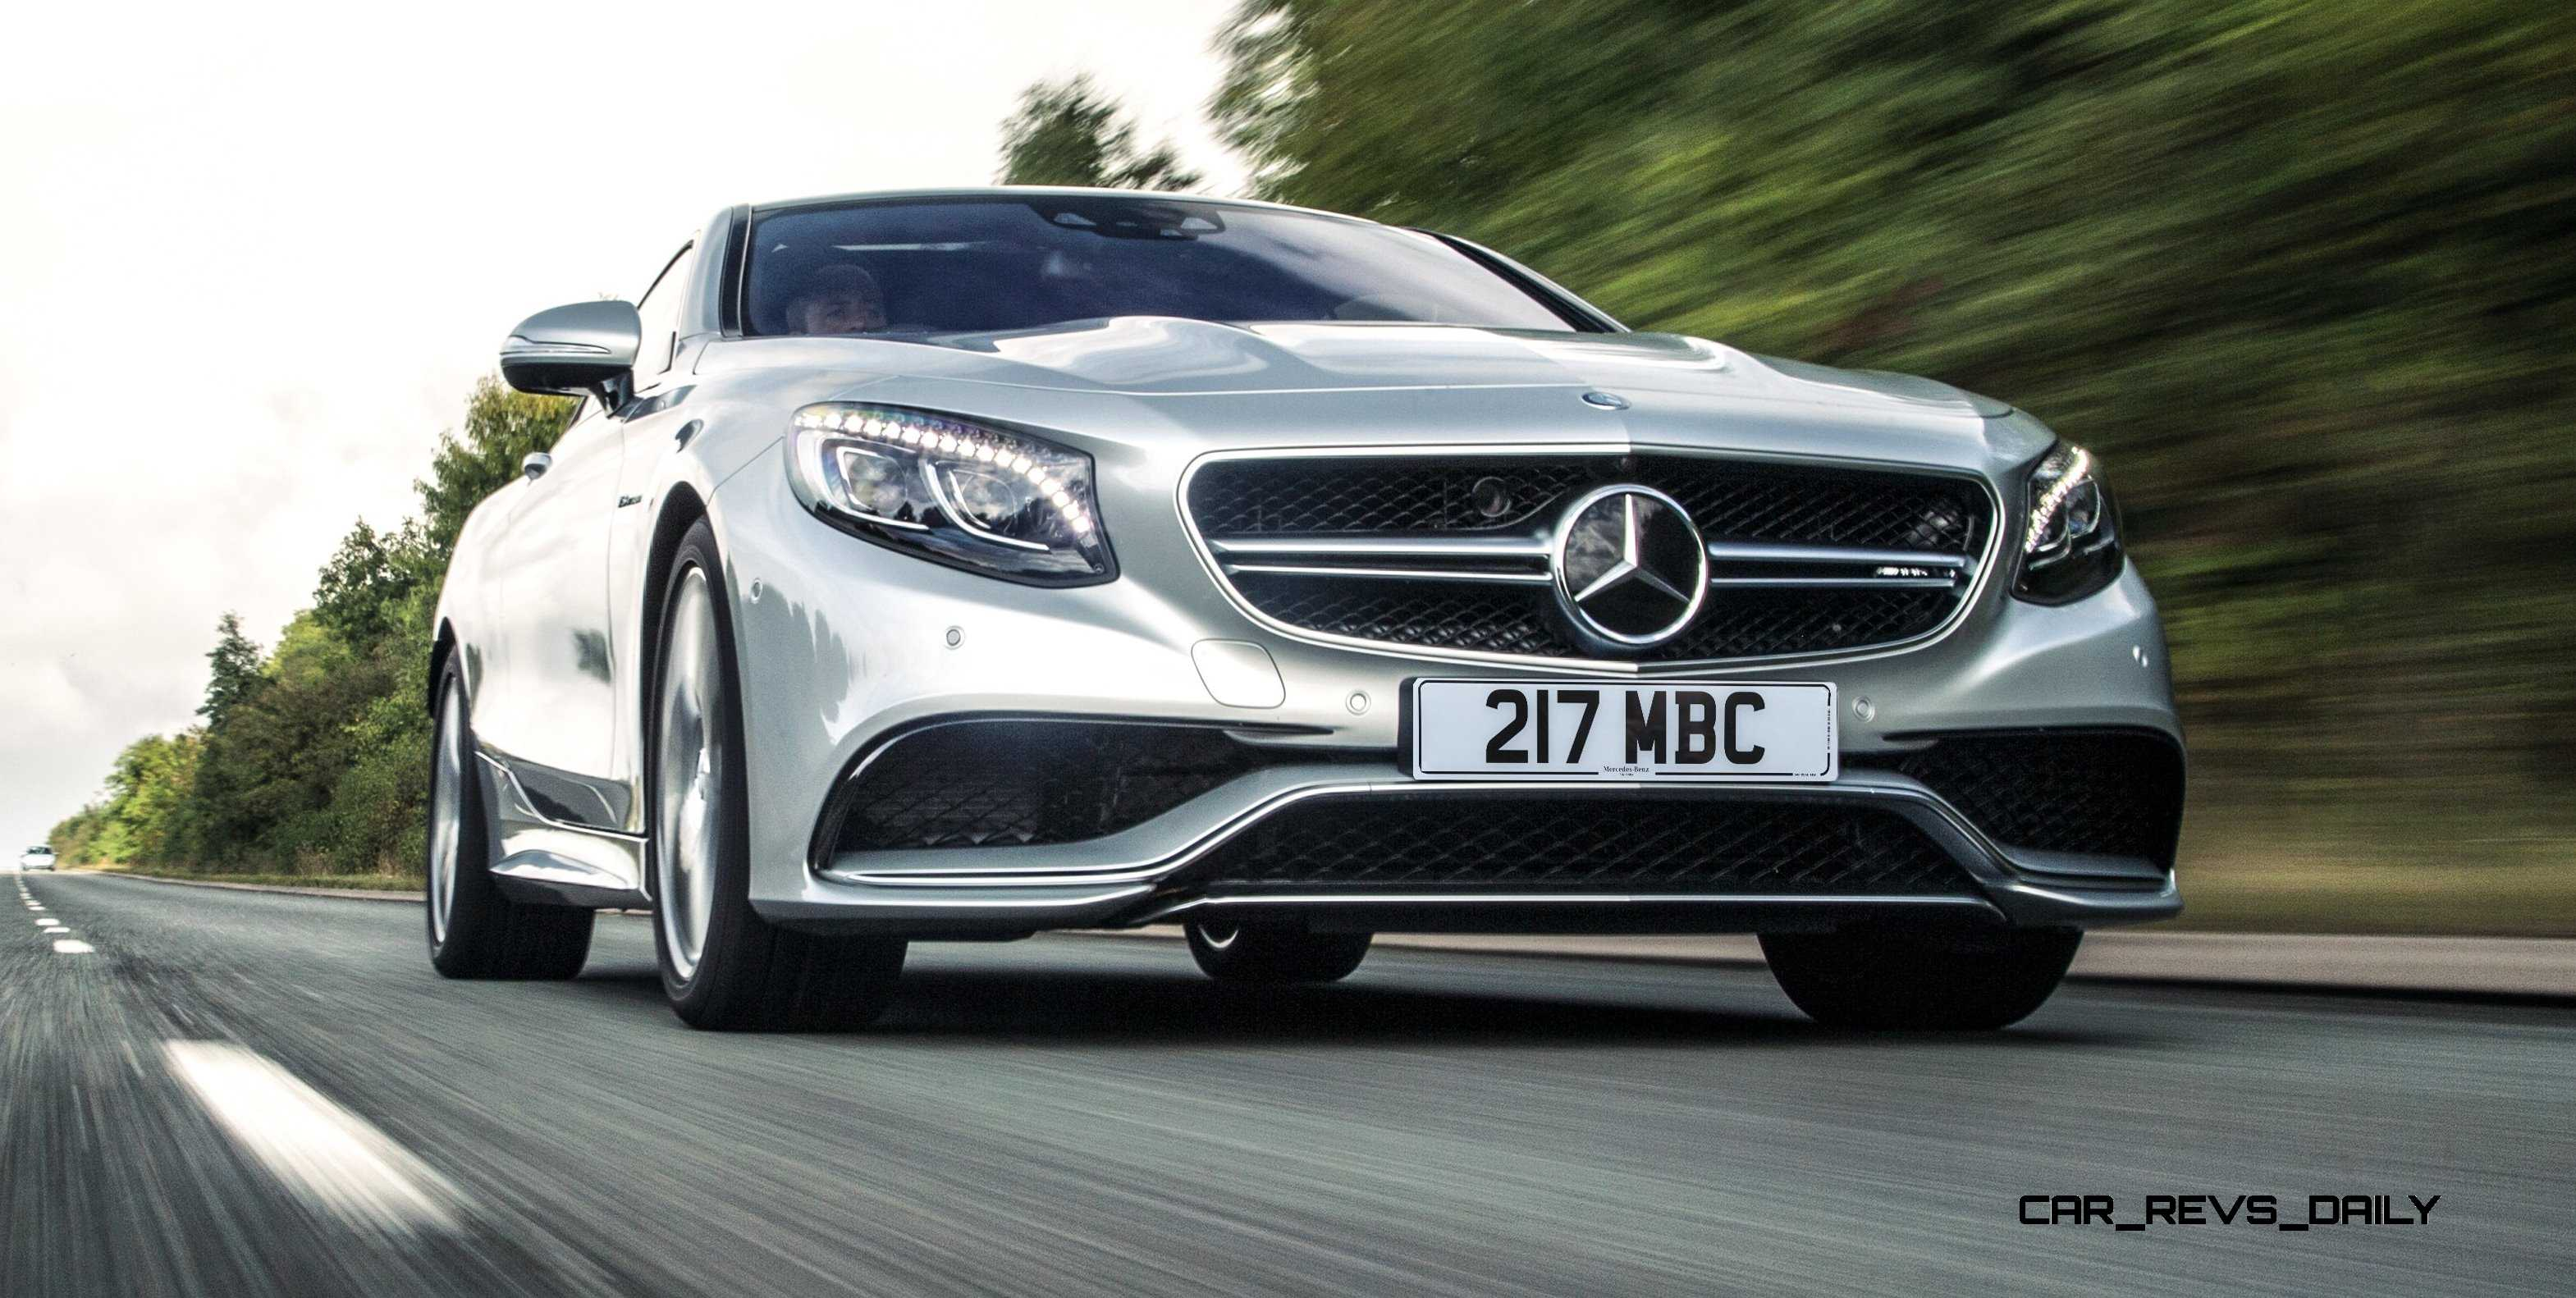 http://www.car-revs-daily.com/wp-content/uploads/2014/10/2015-Mercedes-Benz-S63-AMG-Coupe-4.jpg